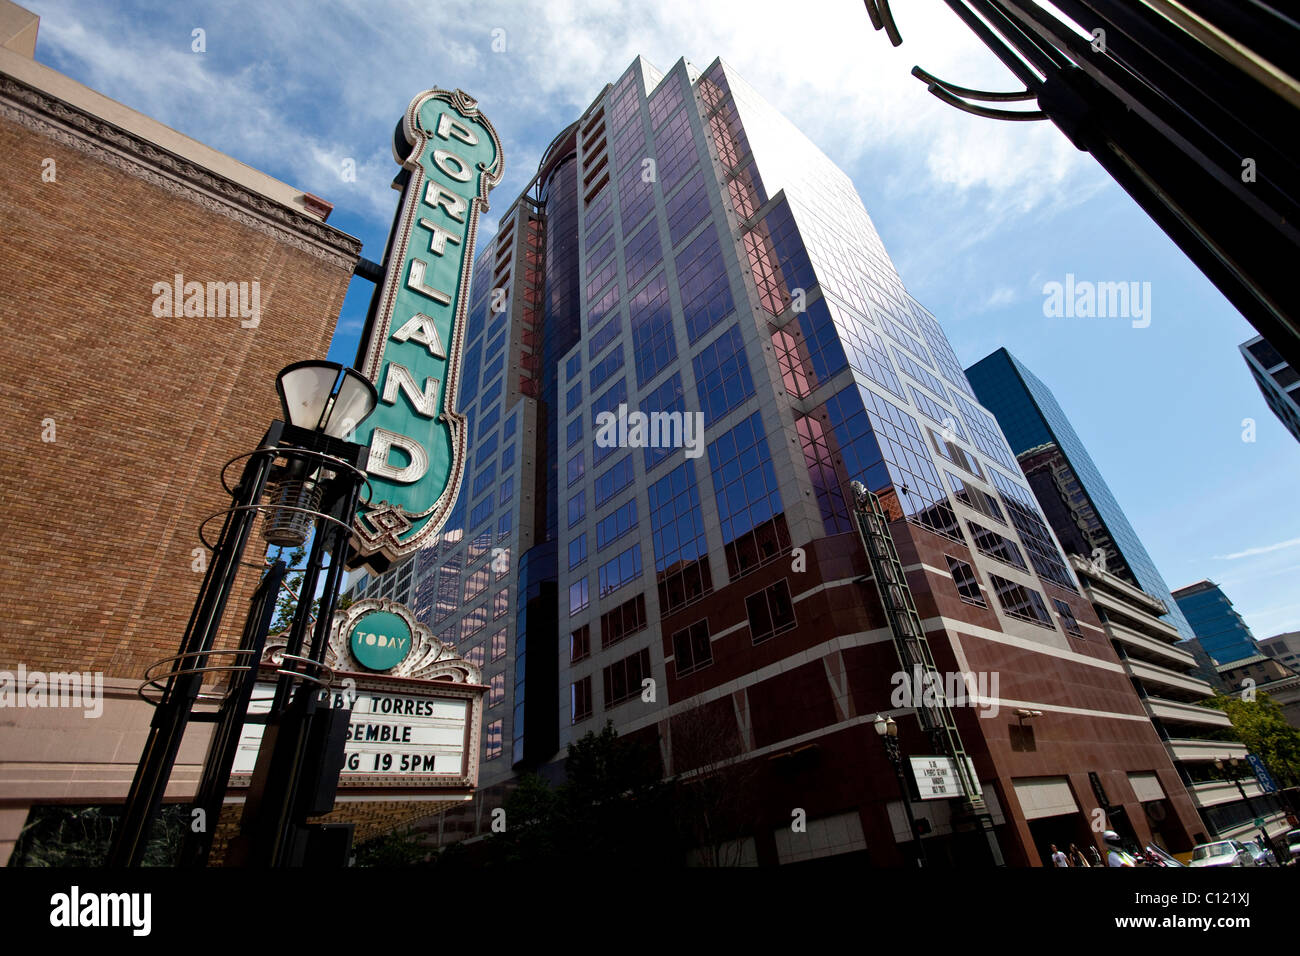 Portland Theater in SW Main Street, Portland, Oregon, USA - Stock Image